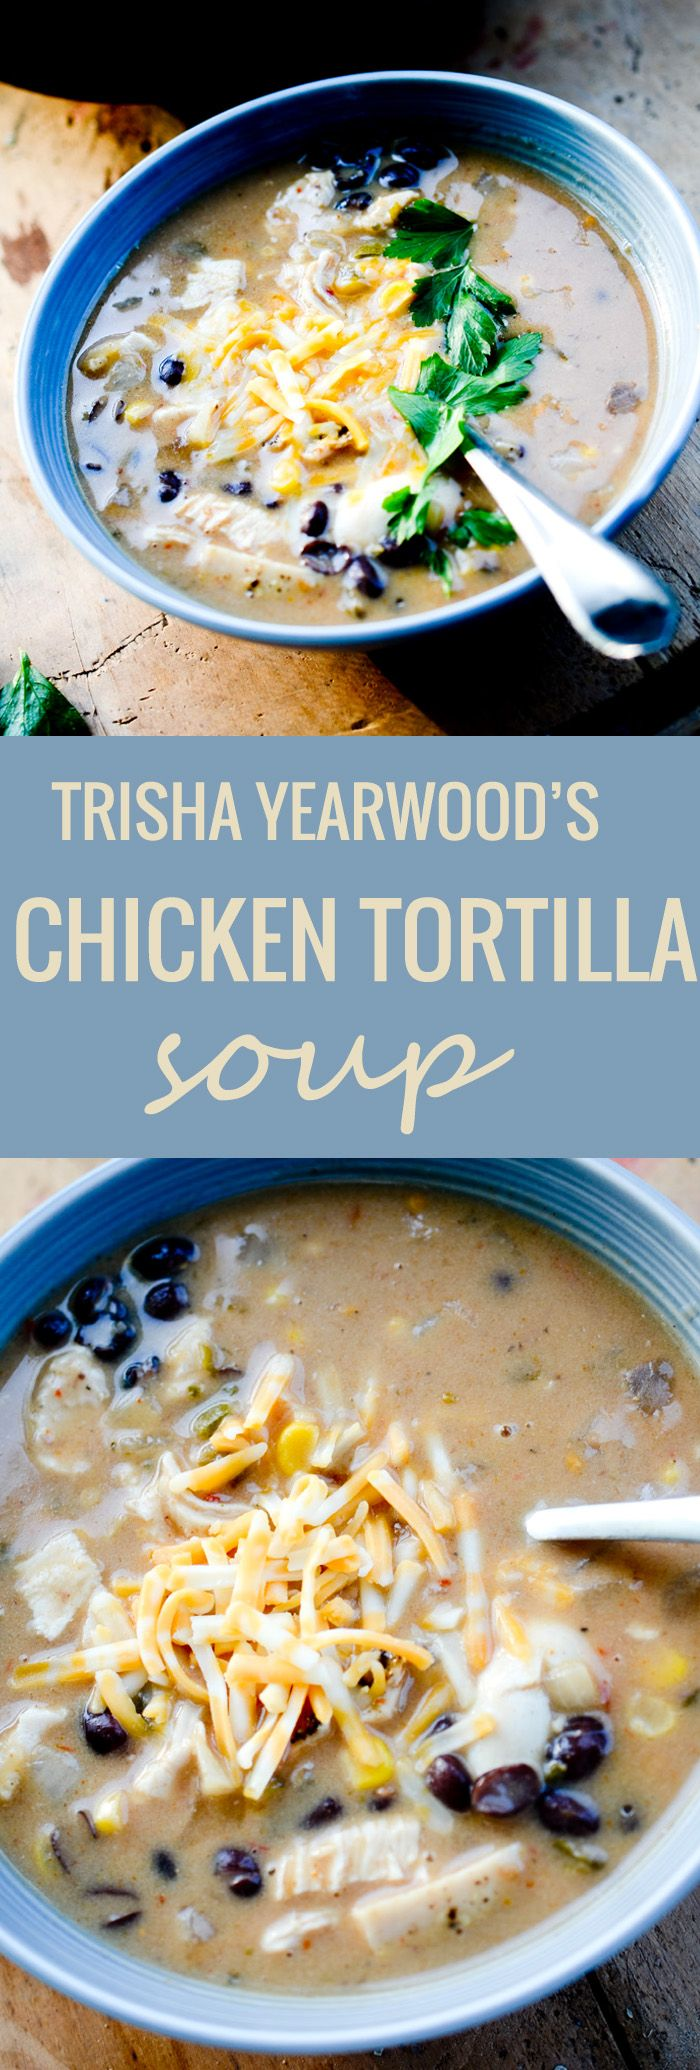 Chicken Tortilla Soup - Trisha Yearwood - Recipe Diaries